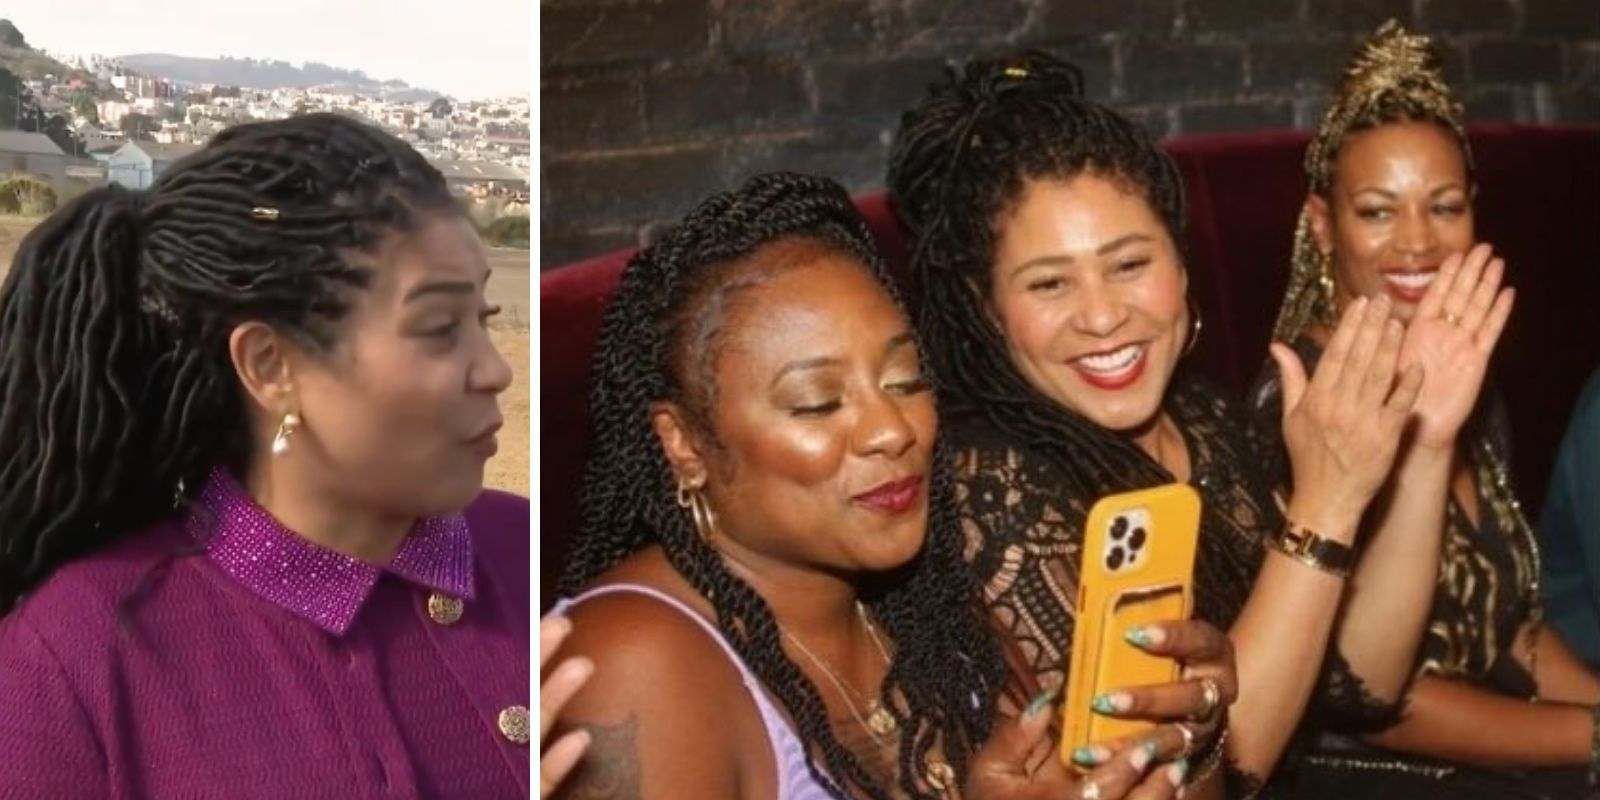 WATCH: San Francisco mayor caught partying maskless says she 'was feeling the spirit' and doesn't need 'the fun police'